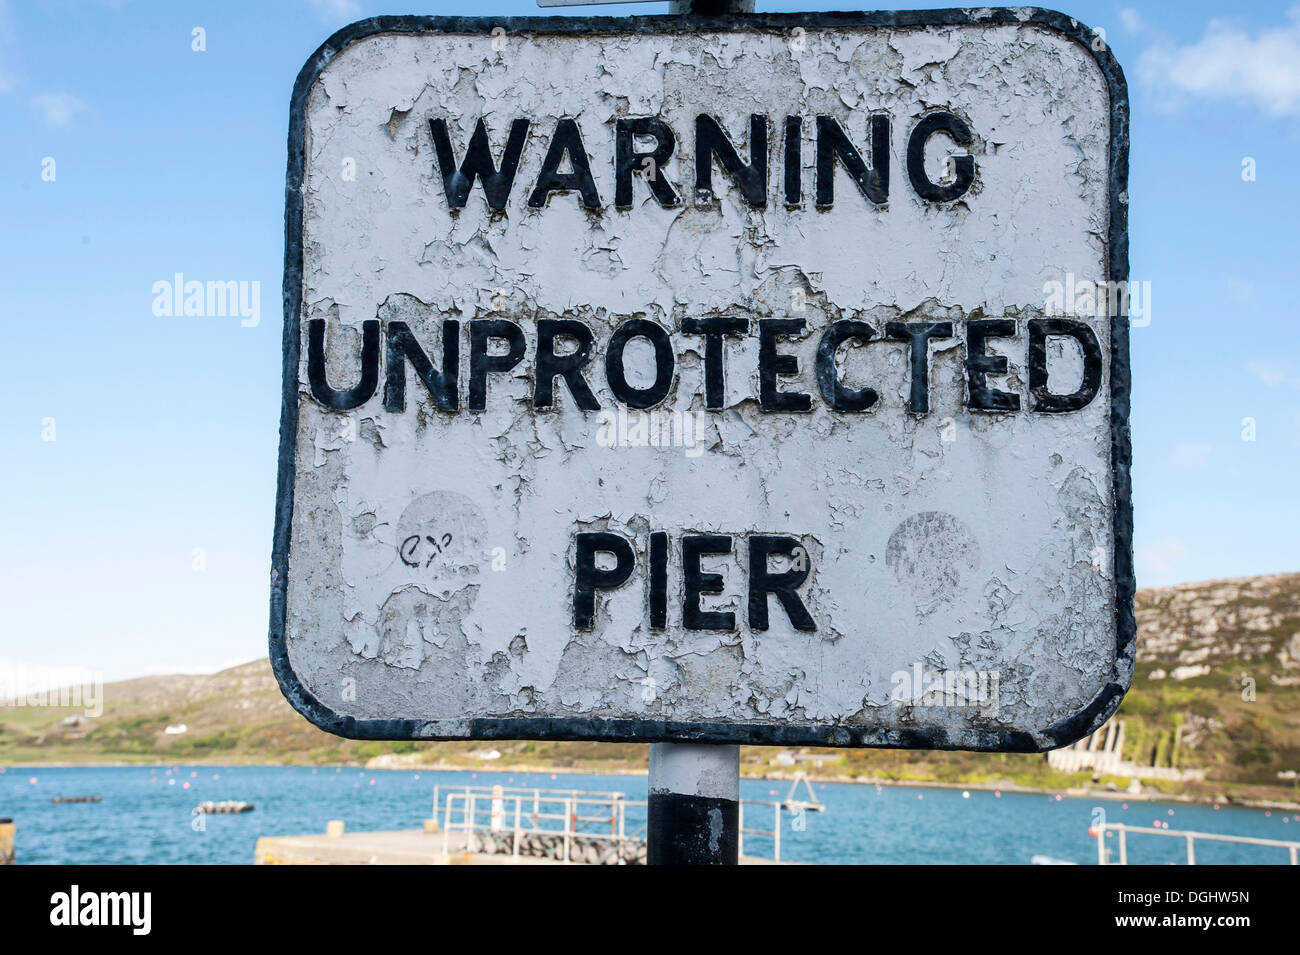 Warning sign, 'warning unprotected pier', Crookhaven, County Cork, Republic of Ireland, Europe - Stock Image